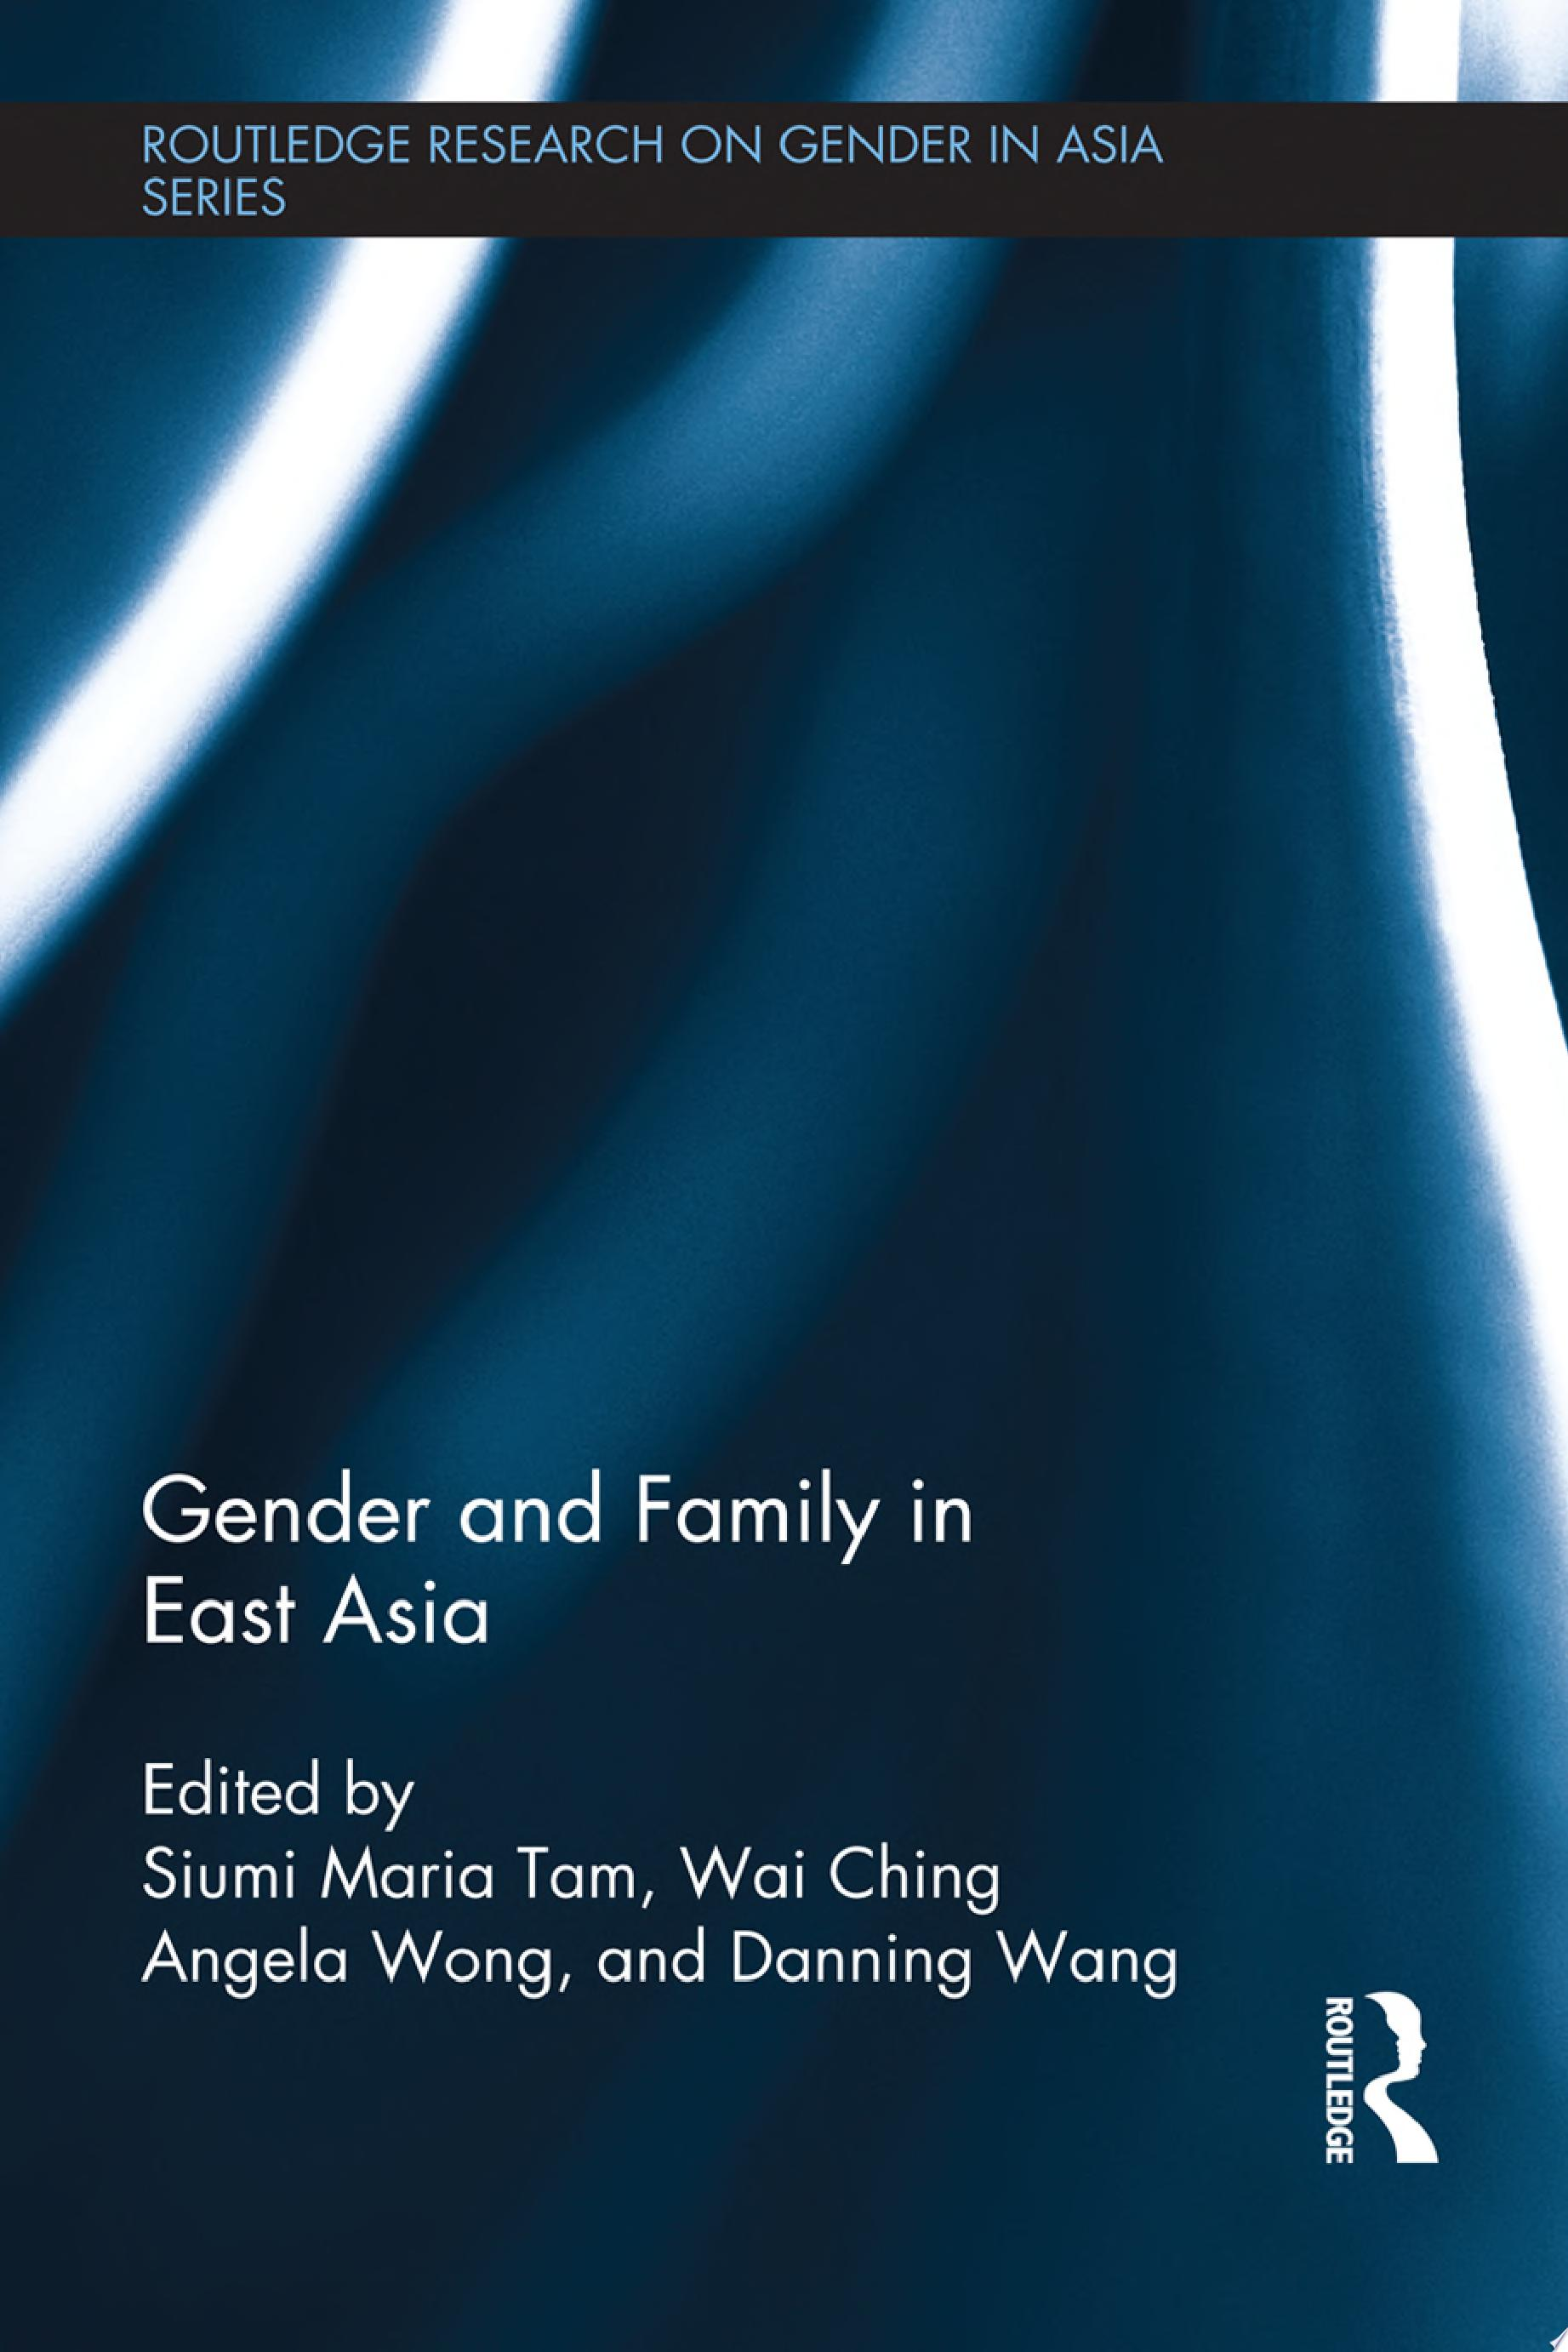 Gender and Family in East Asia